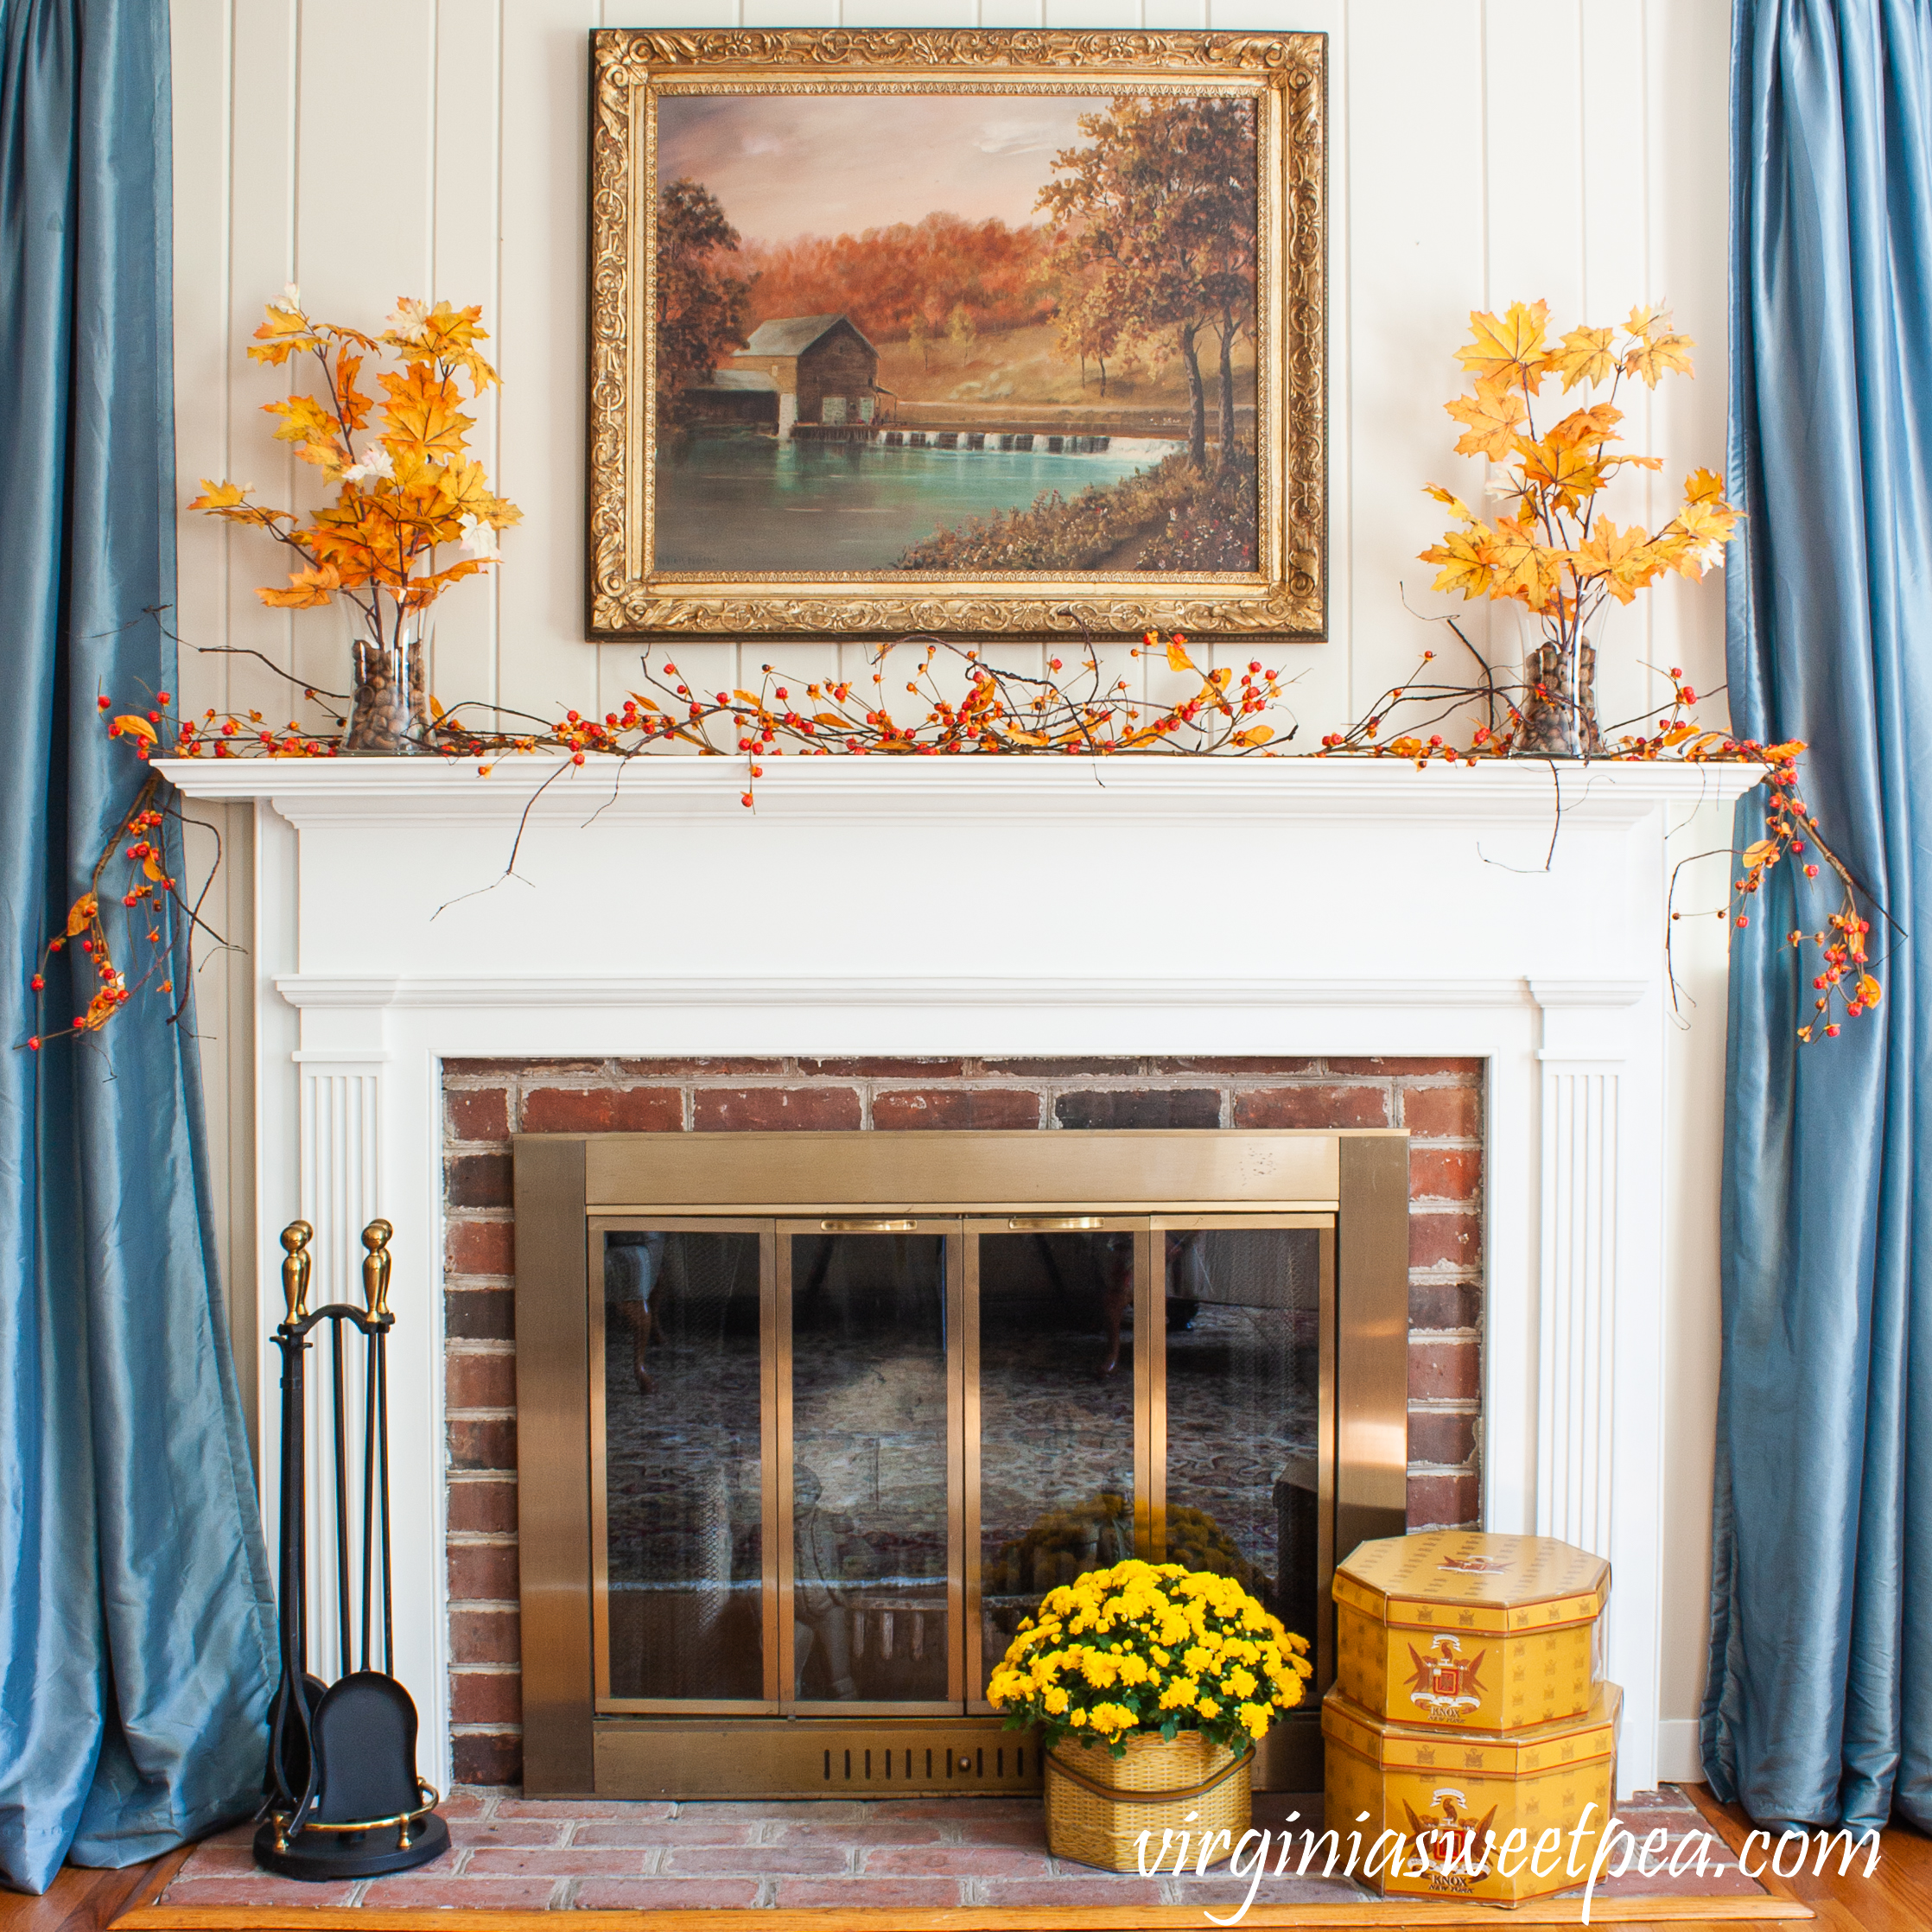 Traditional Fall Mantel - A mantel is decorated for fall with fall foliage, bittersweet, and mums.